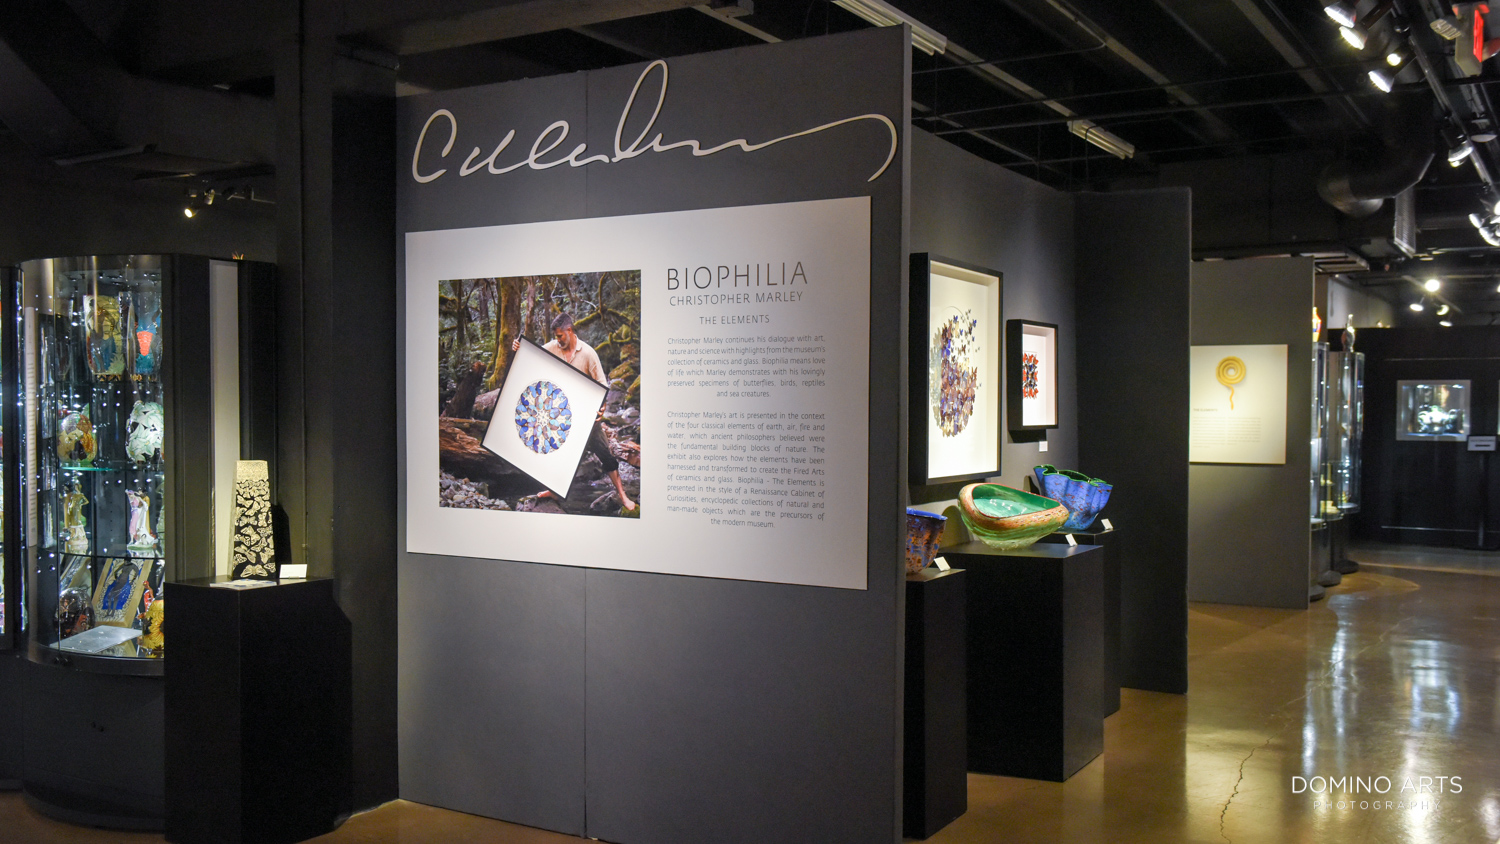 Biophilia by Christopher Marley a dialogue with Art, Nature and Science presented by Gallery if Amazing Things